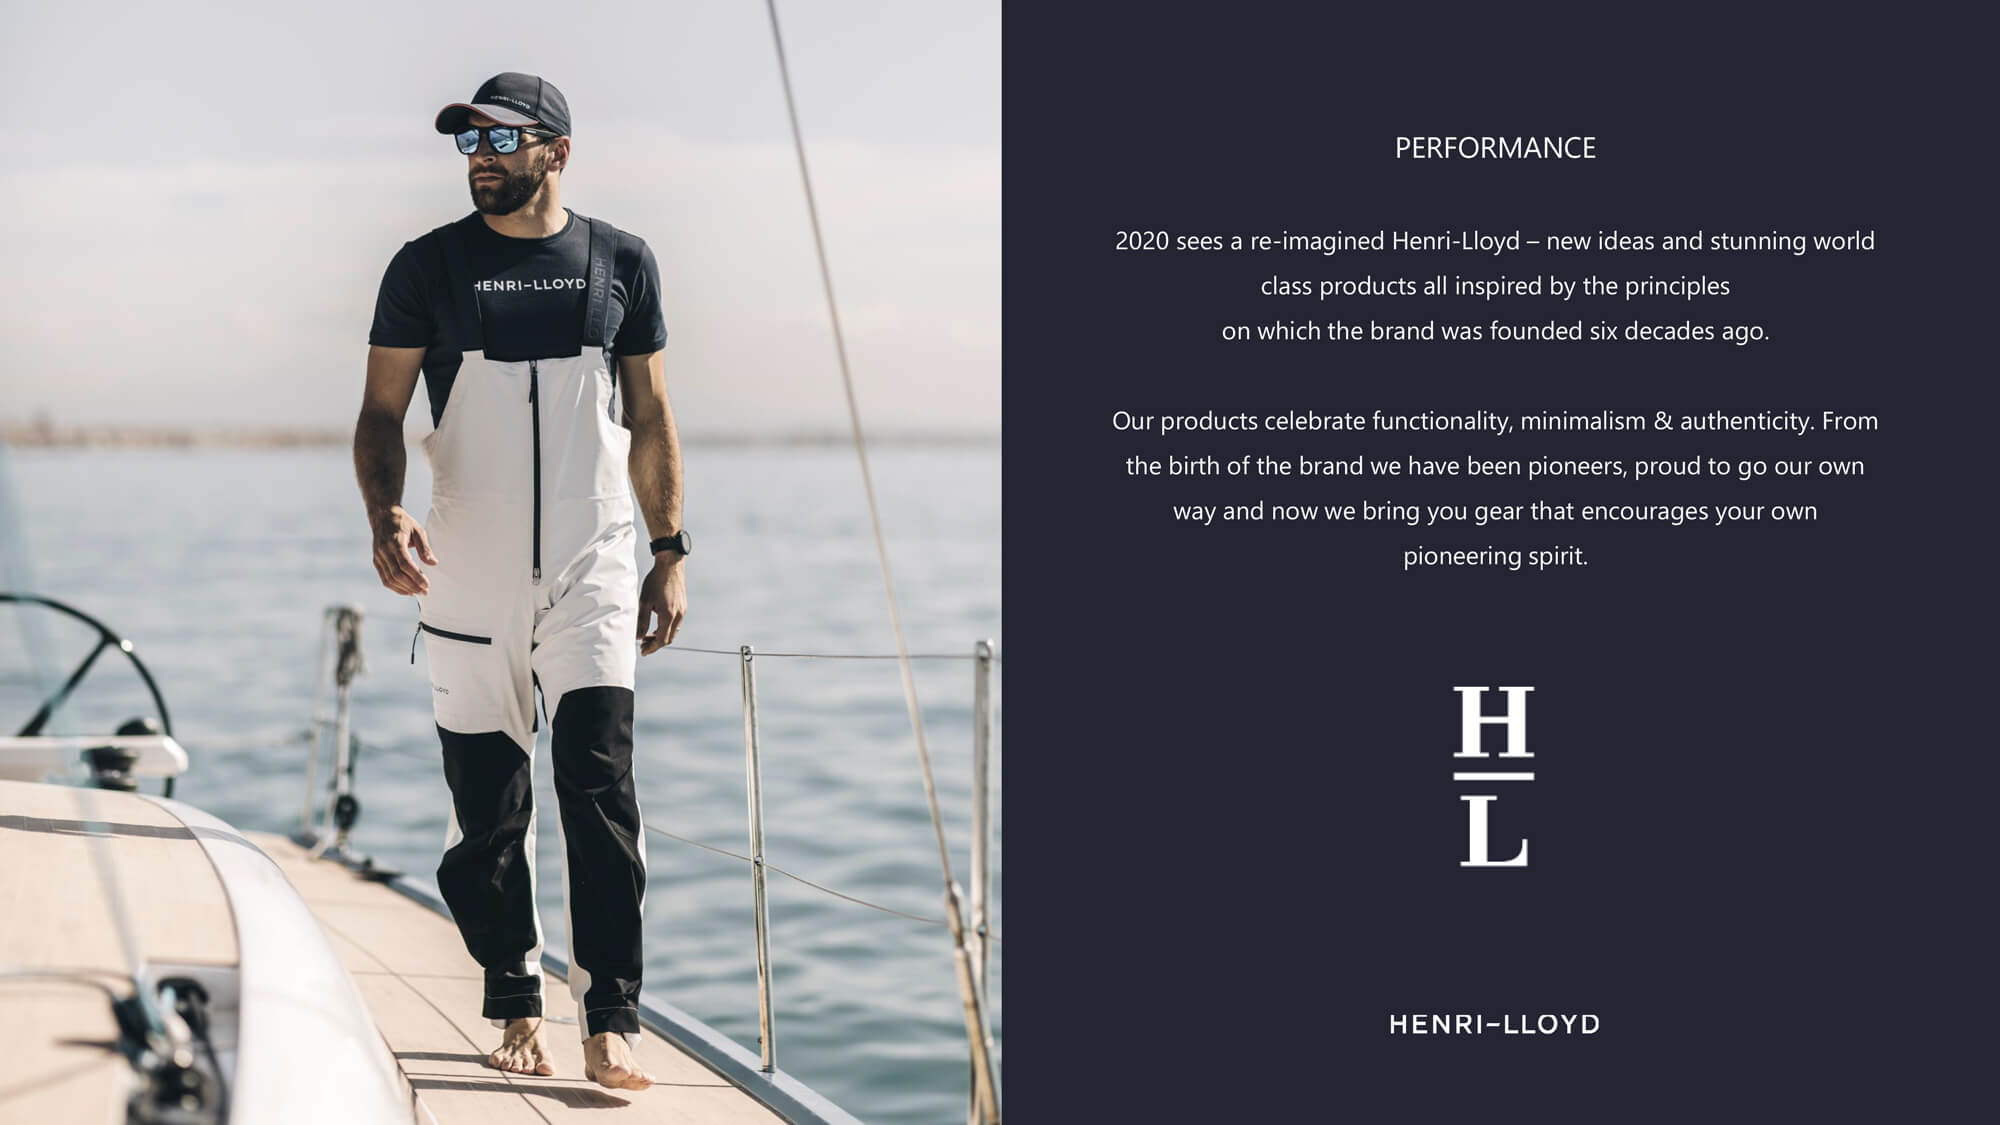 Henri Lloyd Workbook Performance 2020